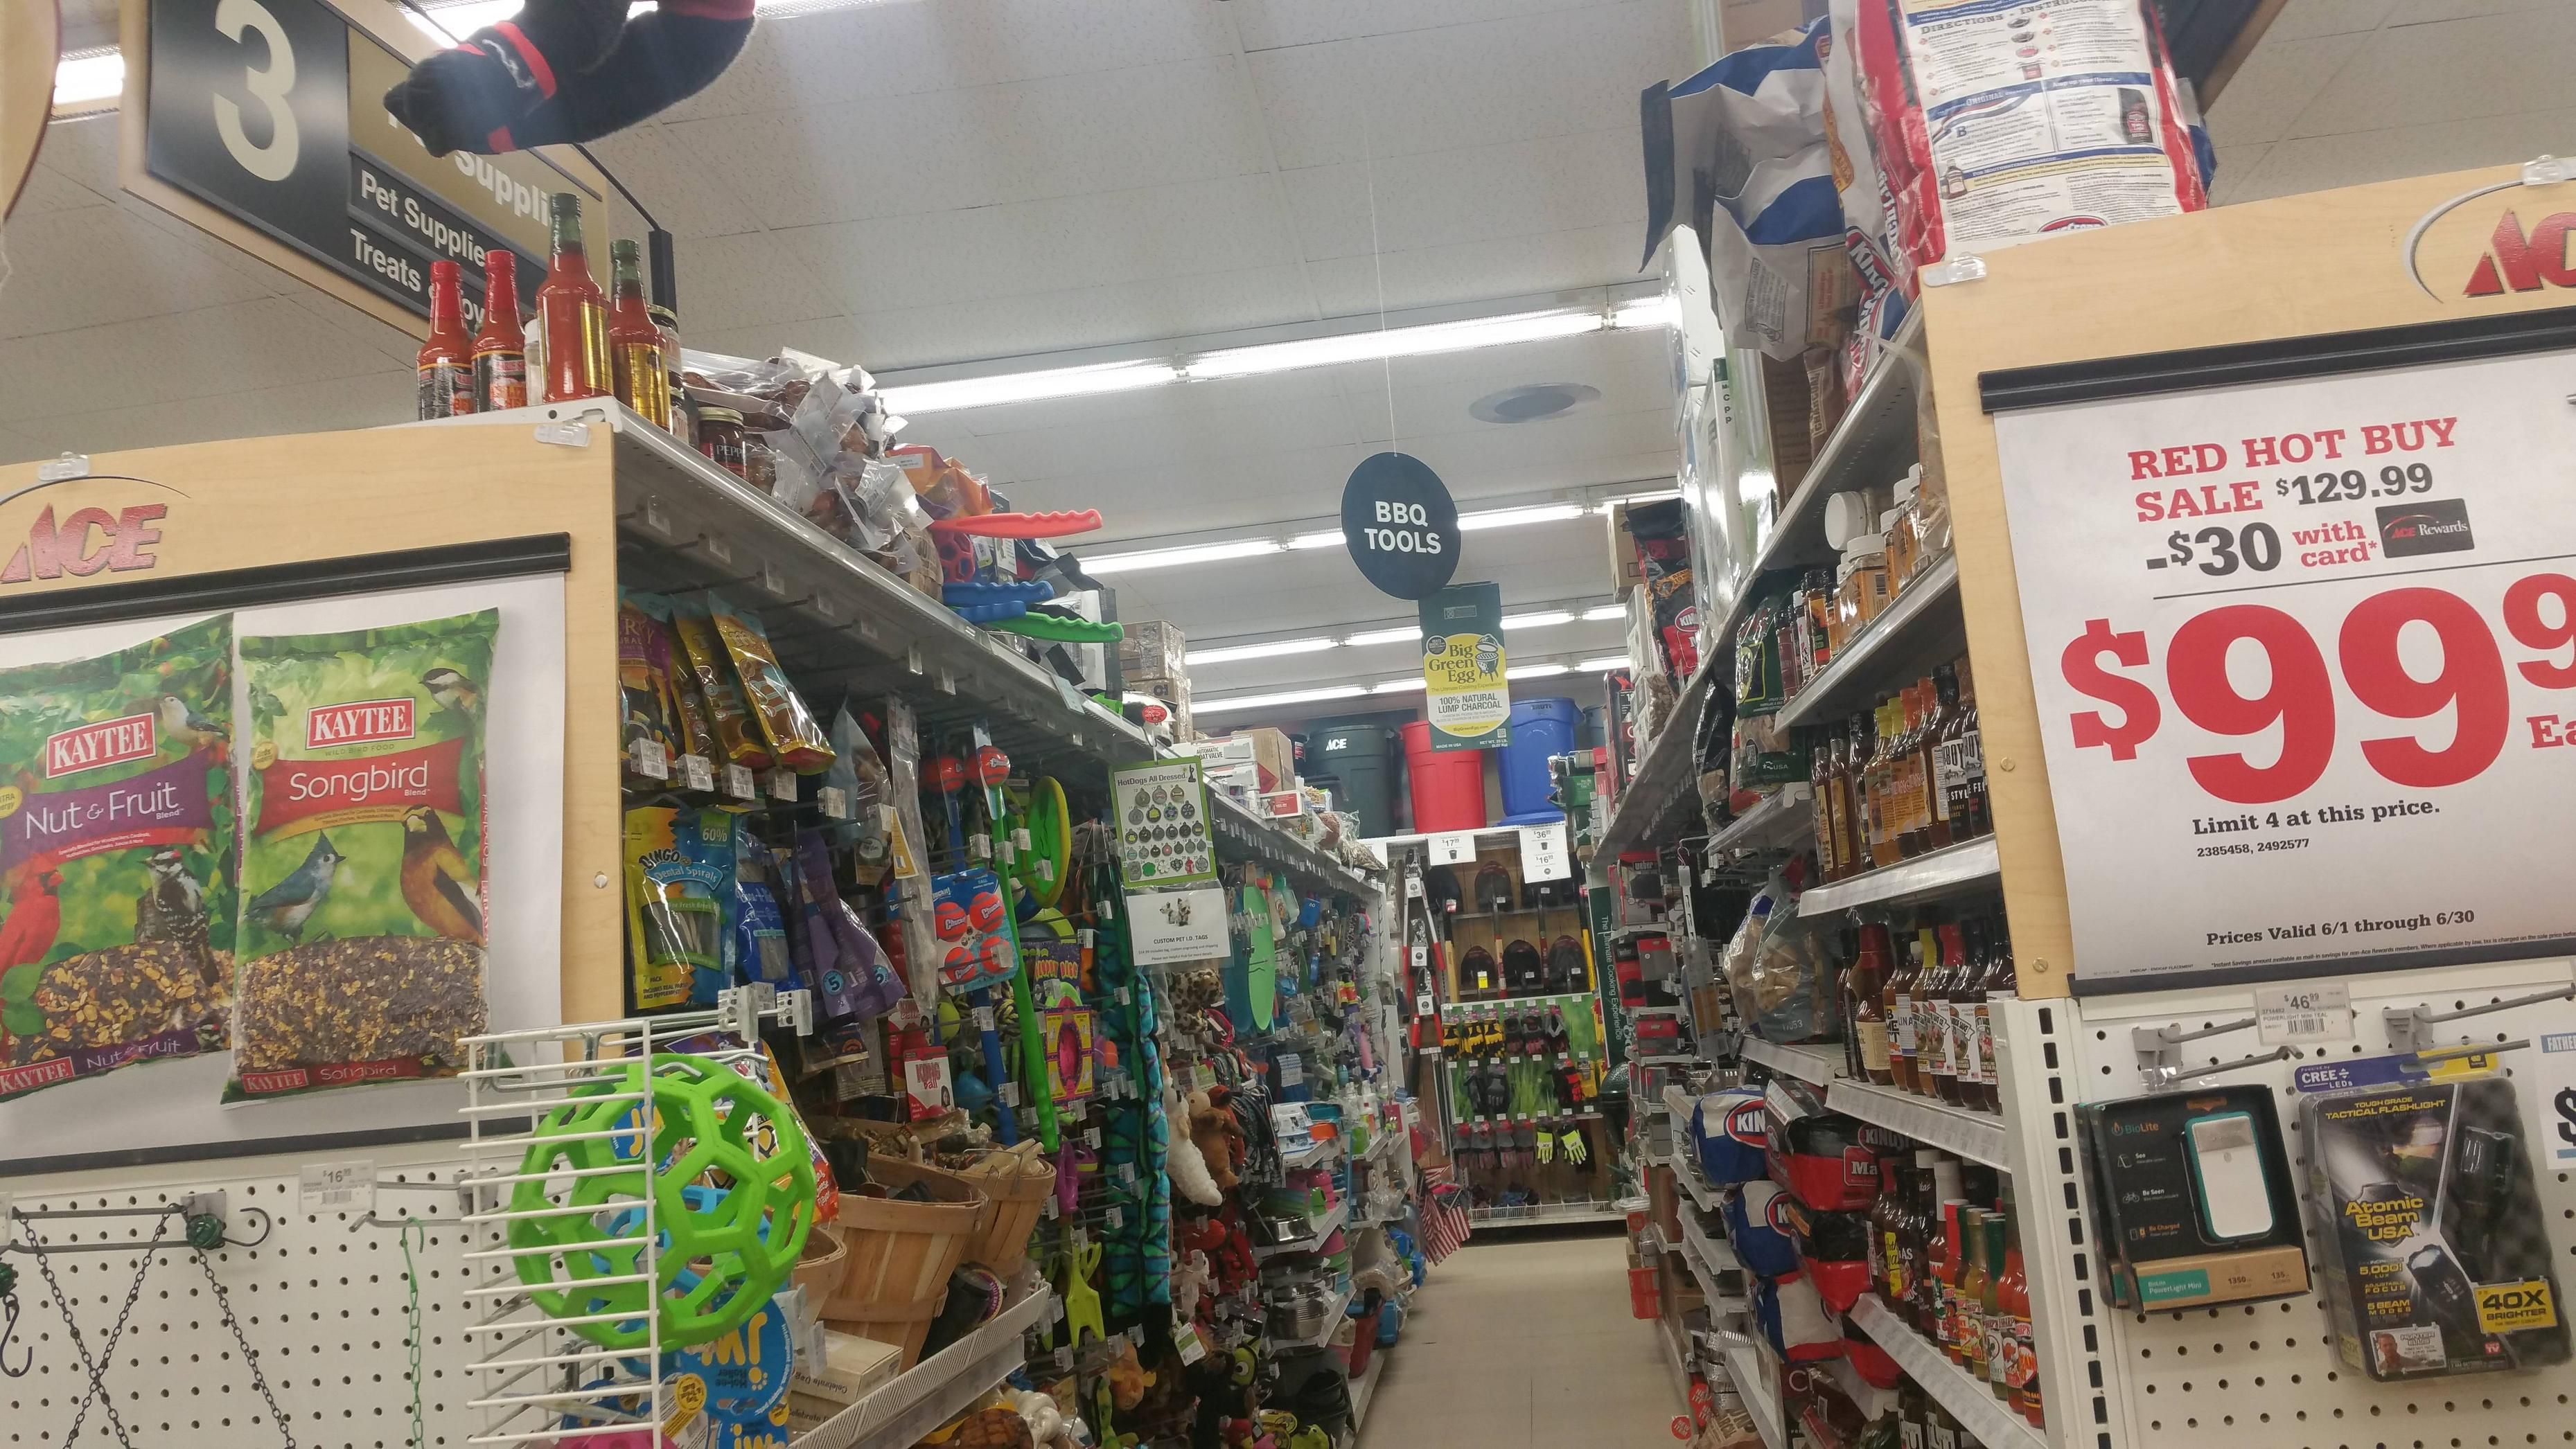 This store Aisle